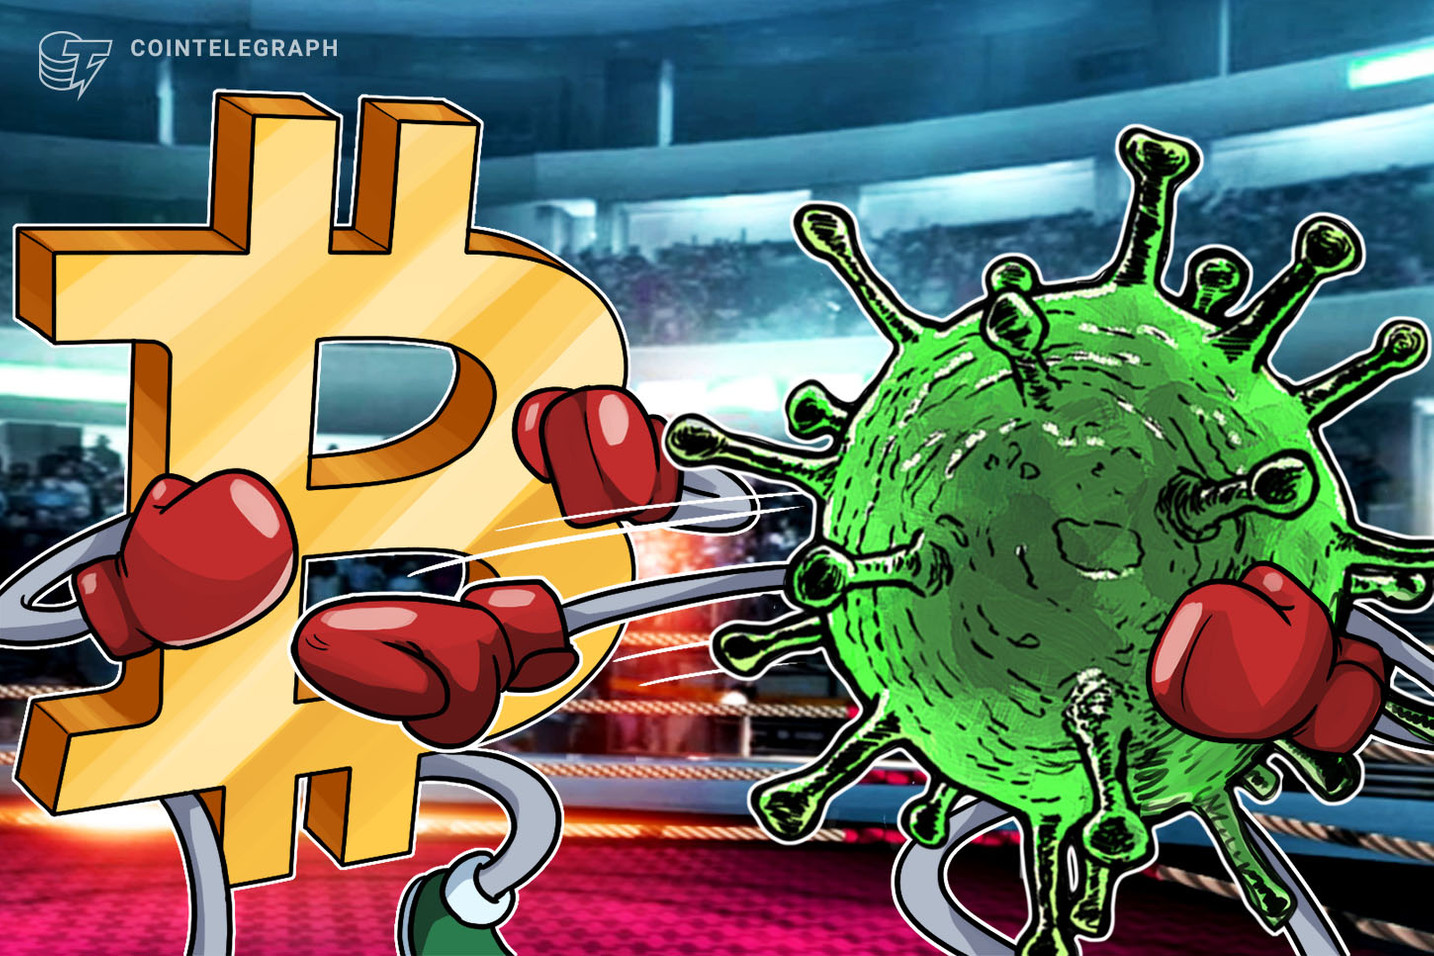 Bitcoin Tests $8.8K as Coronavirus Makes Stocks 'Bargain Basement'